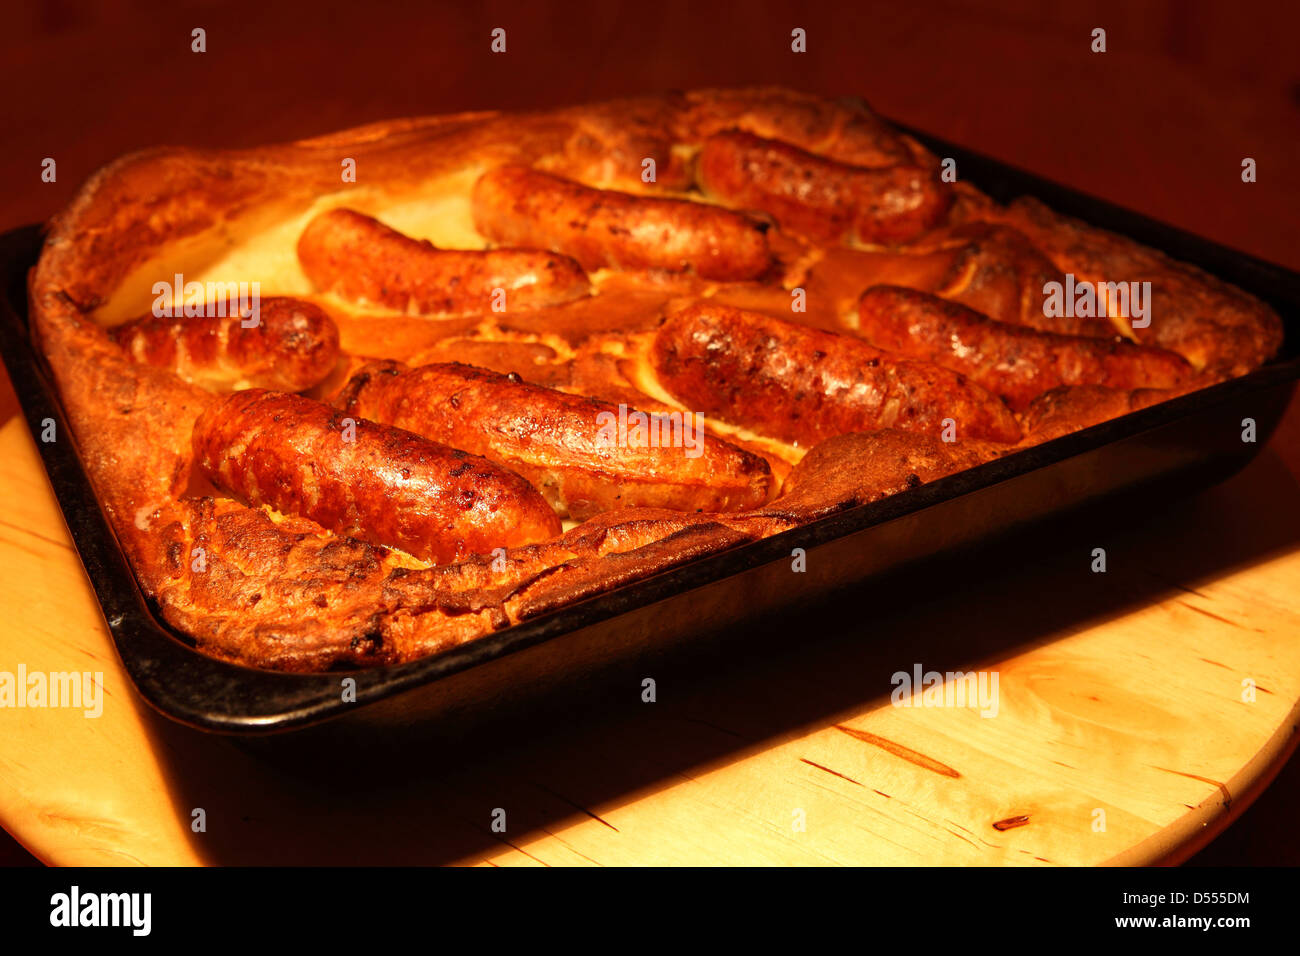 A tray of the classic British dish Toad in the Hole. - Stock Image